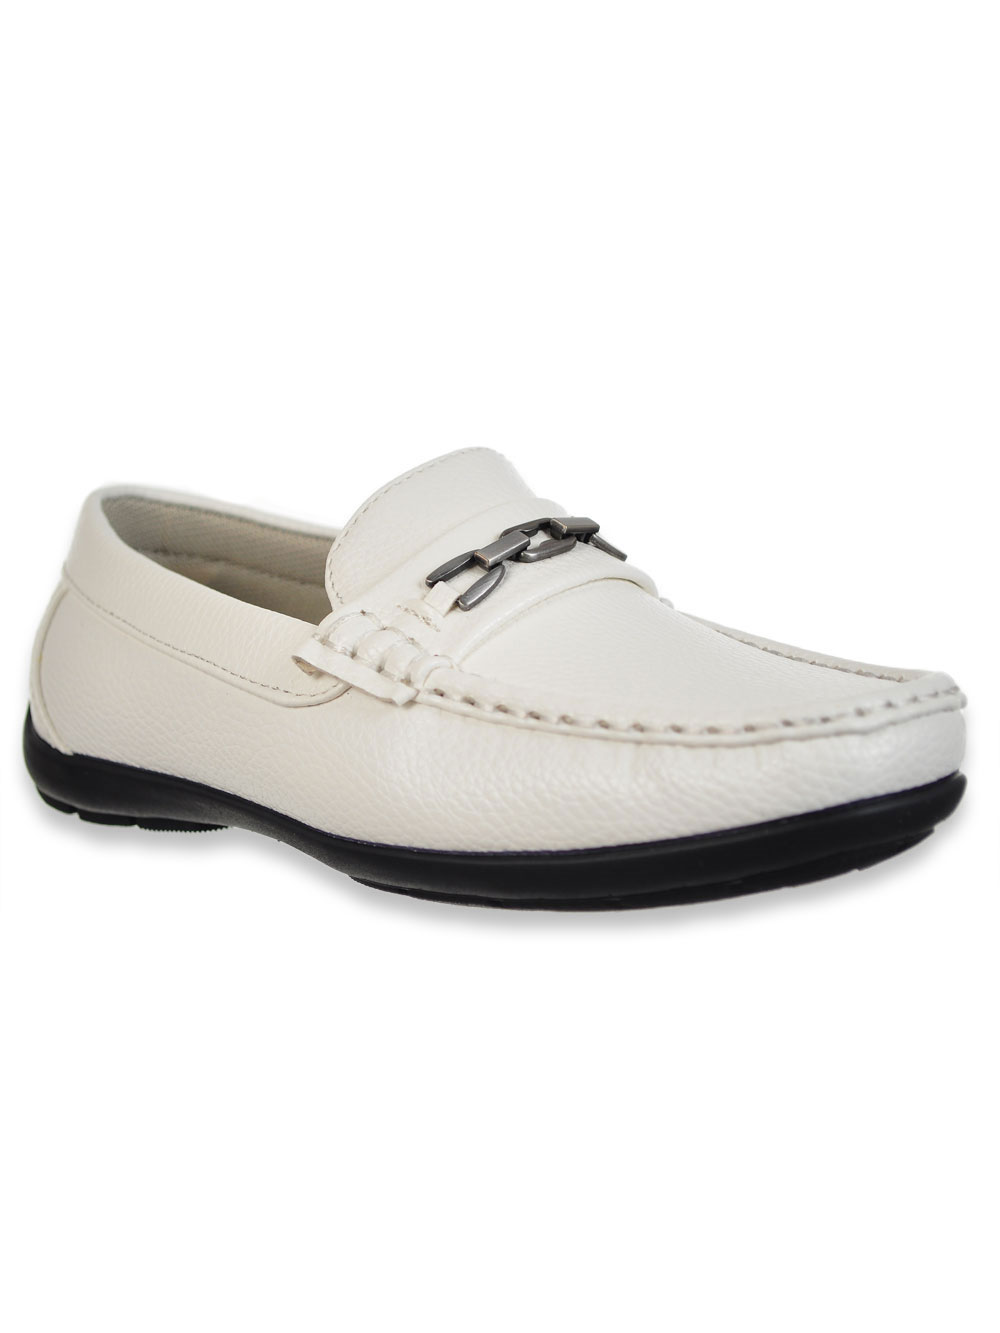 Sizes 6-10 Easy Strider Boys/' Driving Shoes